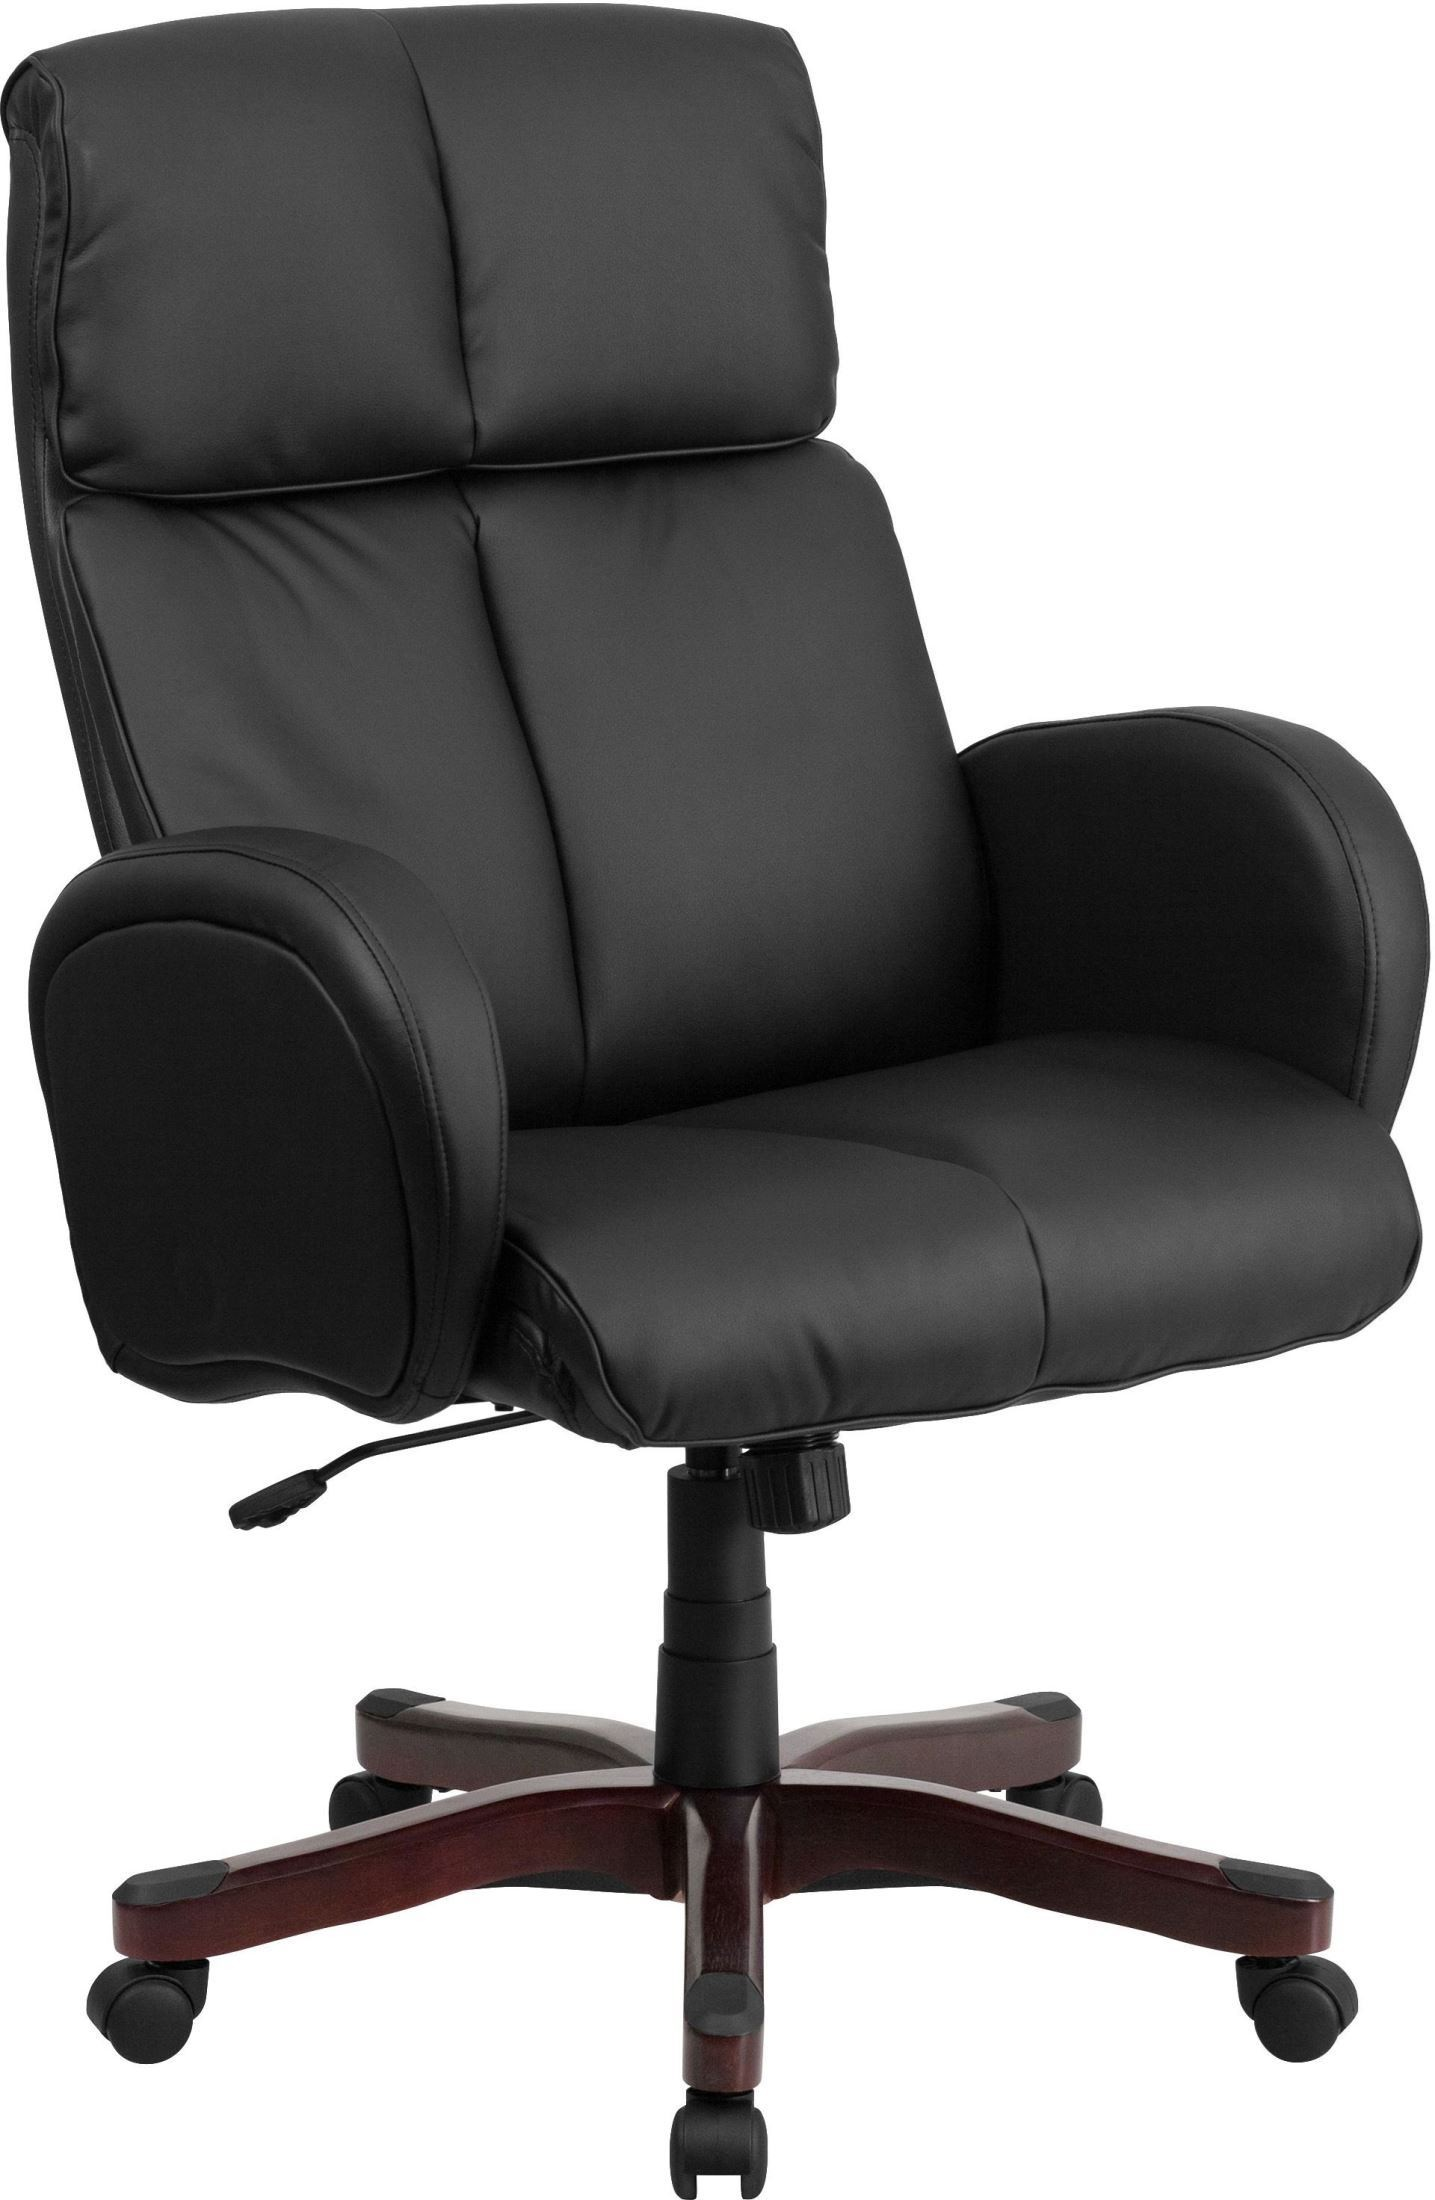 Tall Black Executive Swivel Office Arm Chair BT9028H1